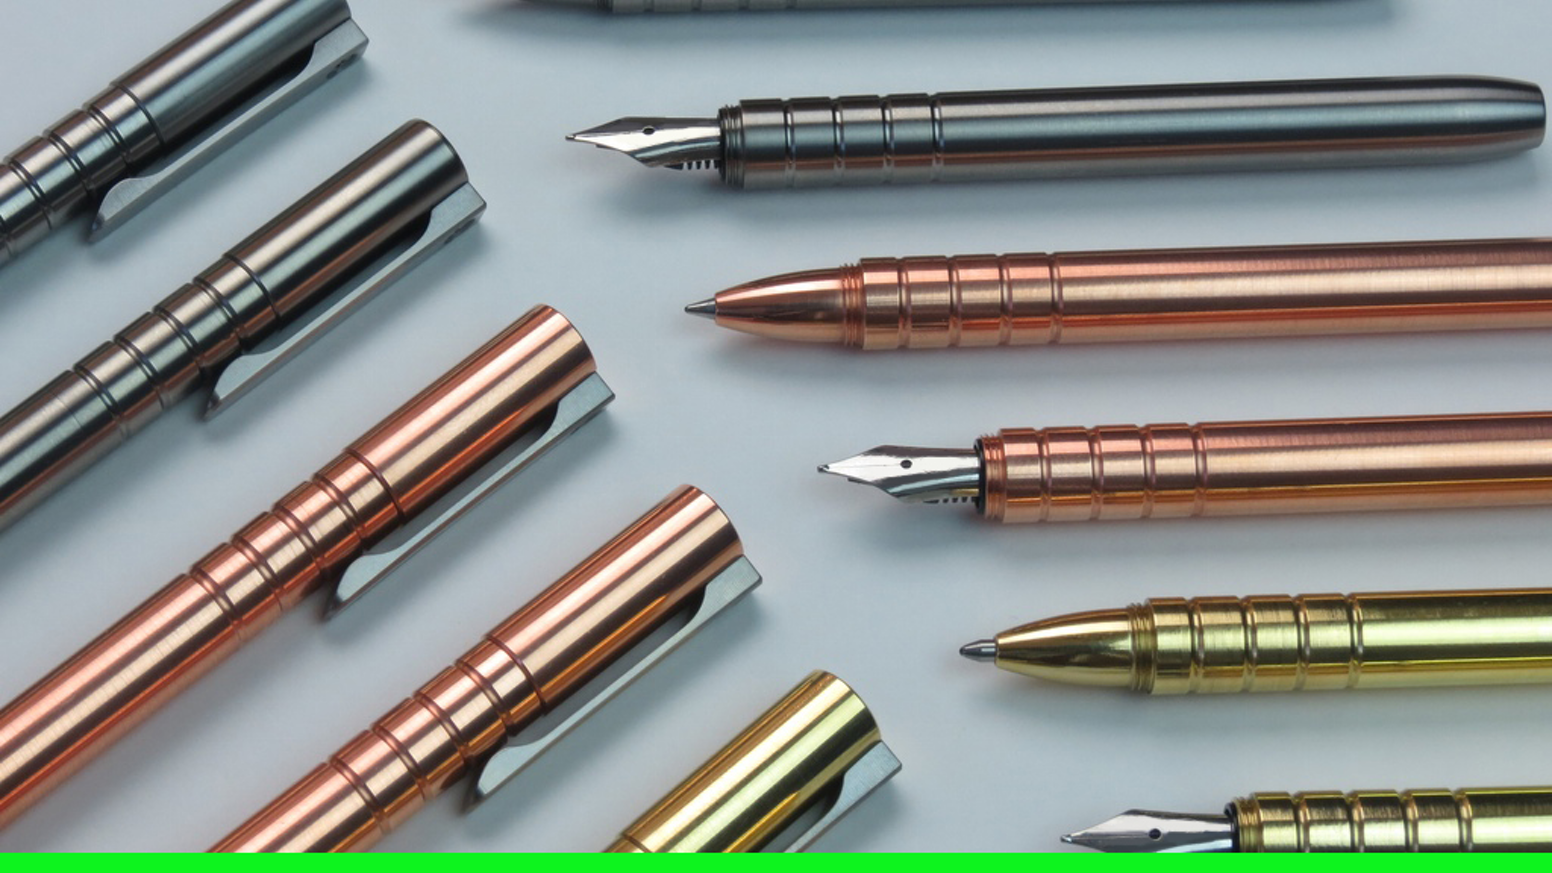 TiScribe™ is a 100% CNC machined pen that comes in two versions: Fountain Pen and Rollerball. MADE IN USA!